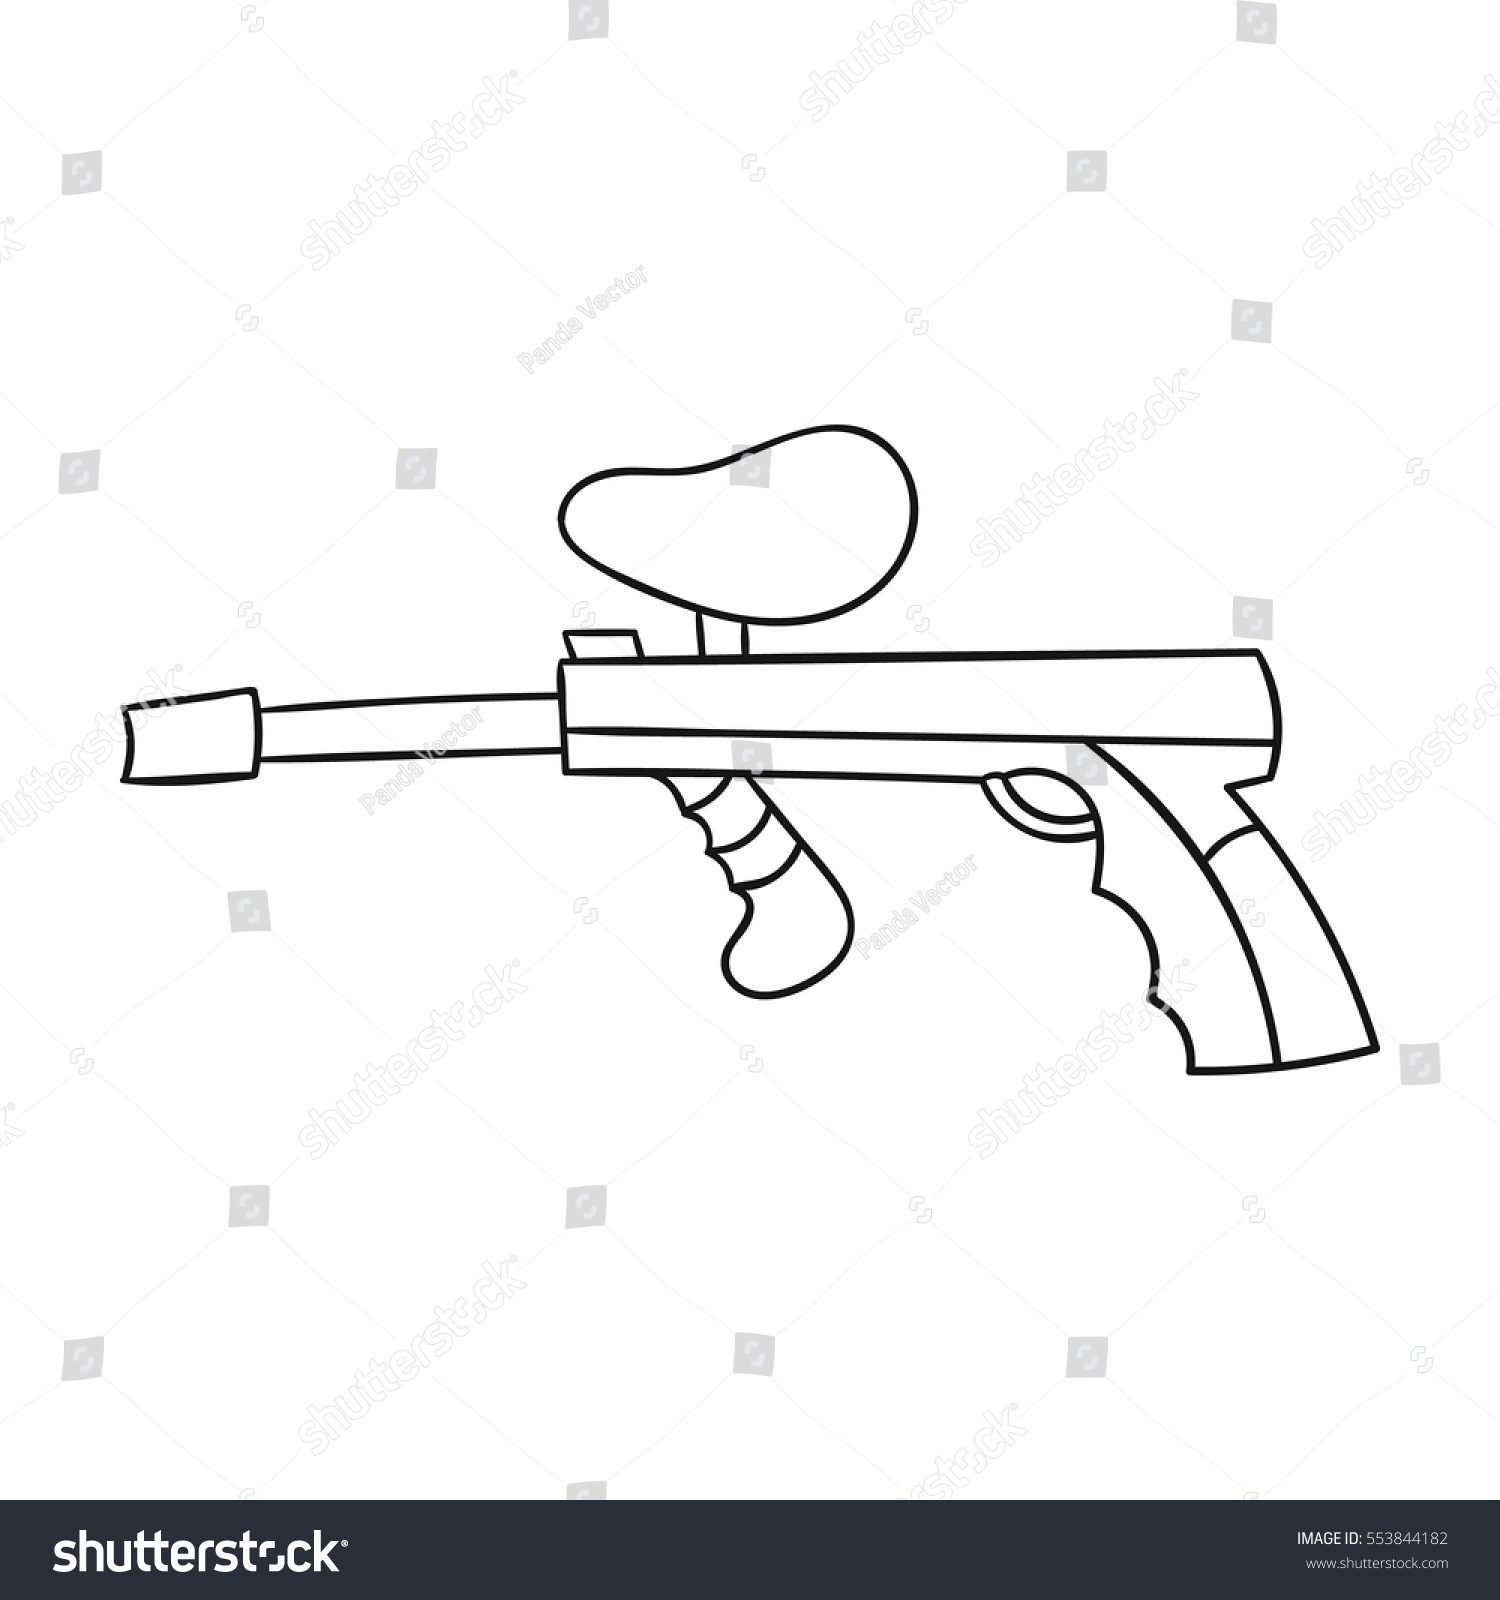 Paintball gun icon outline style isolated stock vector 553844182 paintball gun icon in outline style isolated on white background paintball symbol stock vector illustration biocorpaavc Images